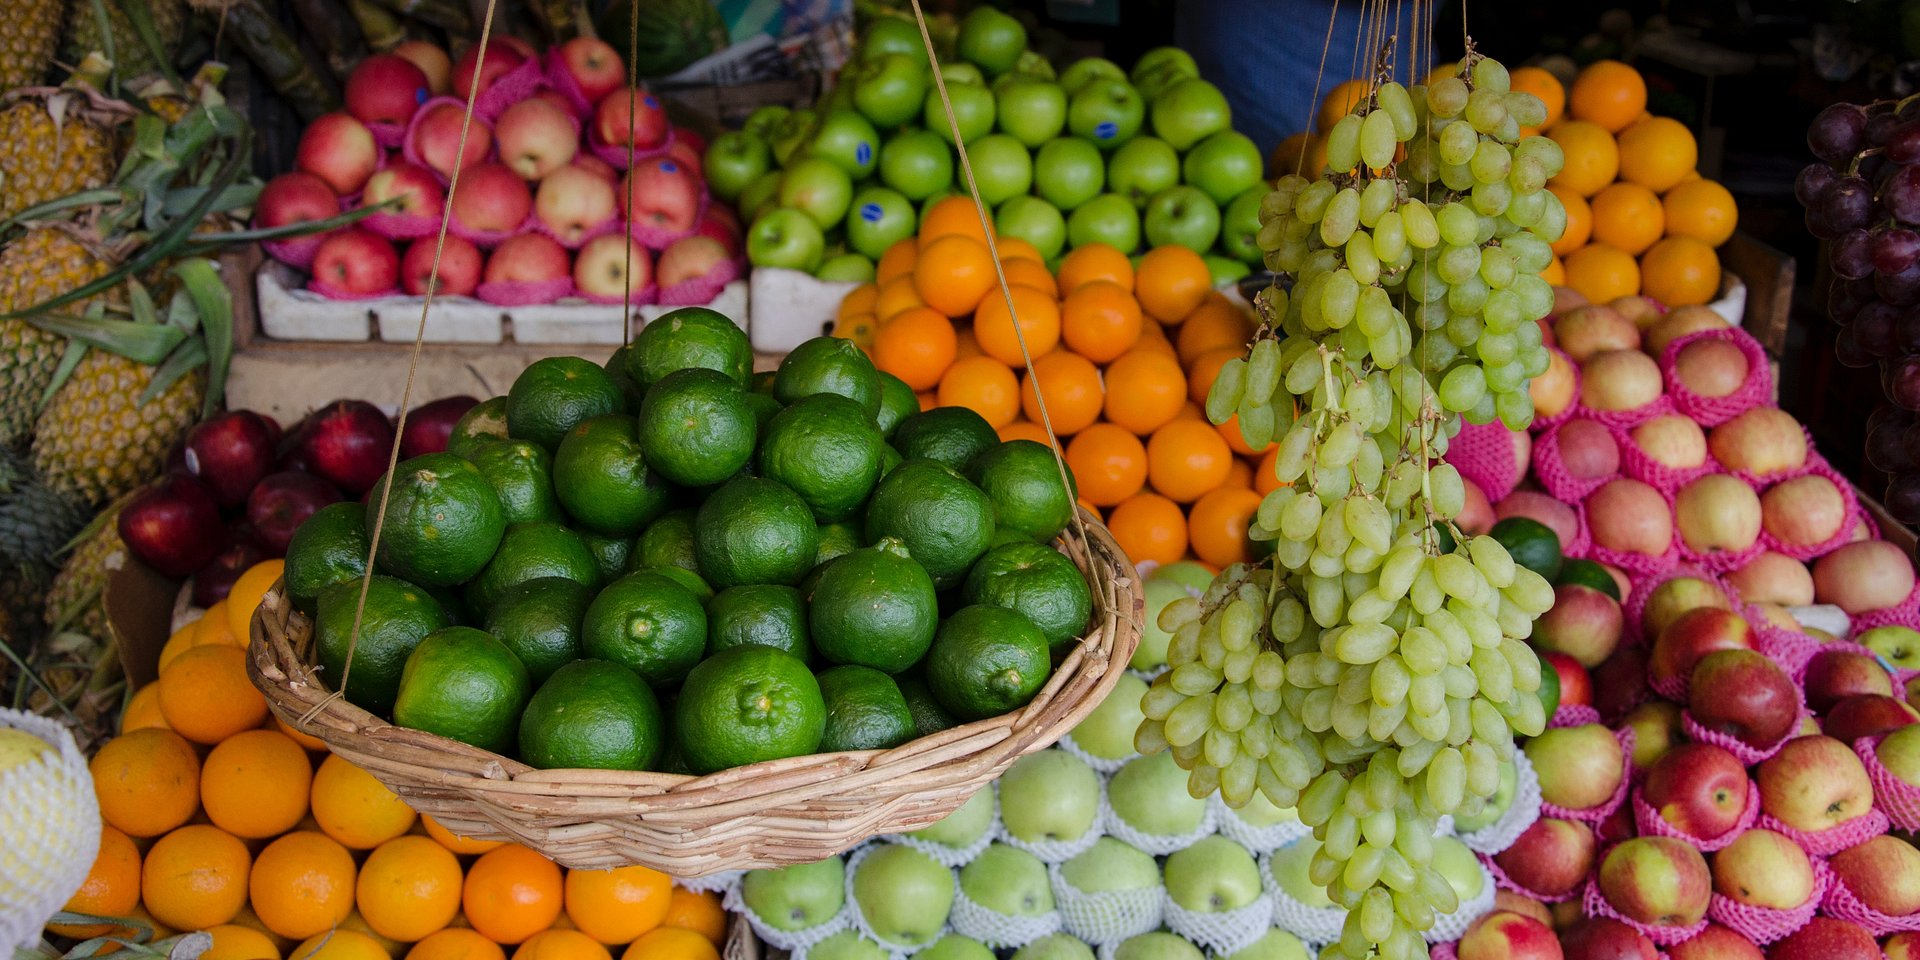 The Online Grocery Report: rising segments of e-commerce